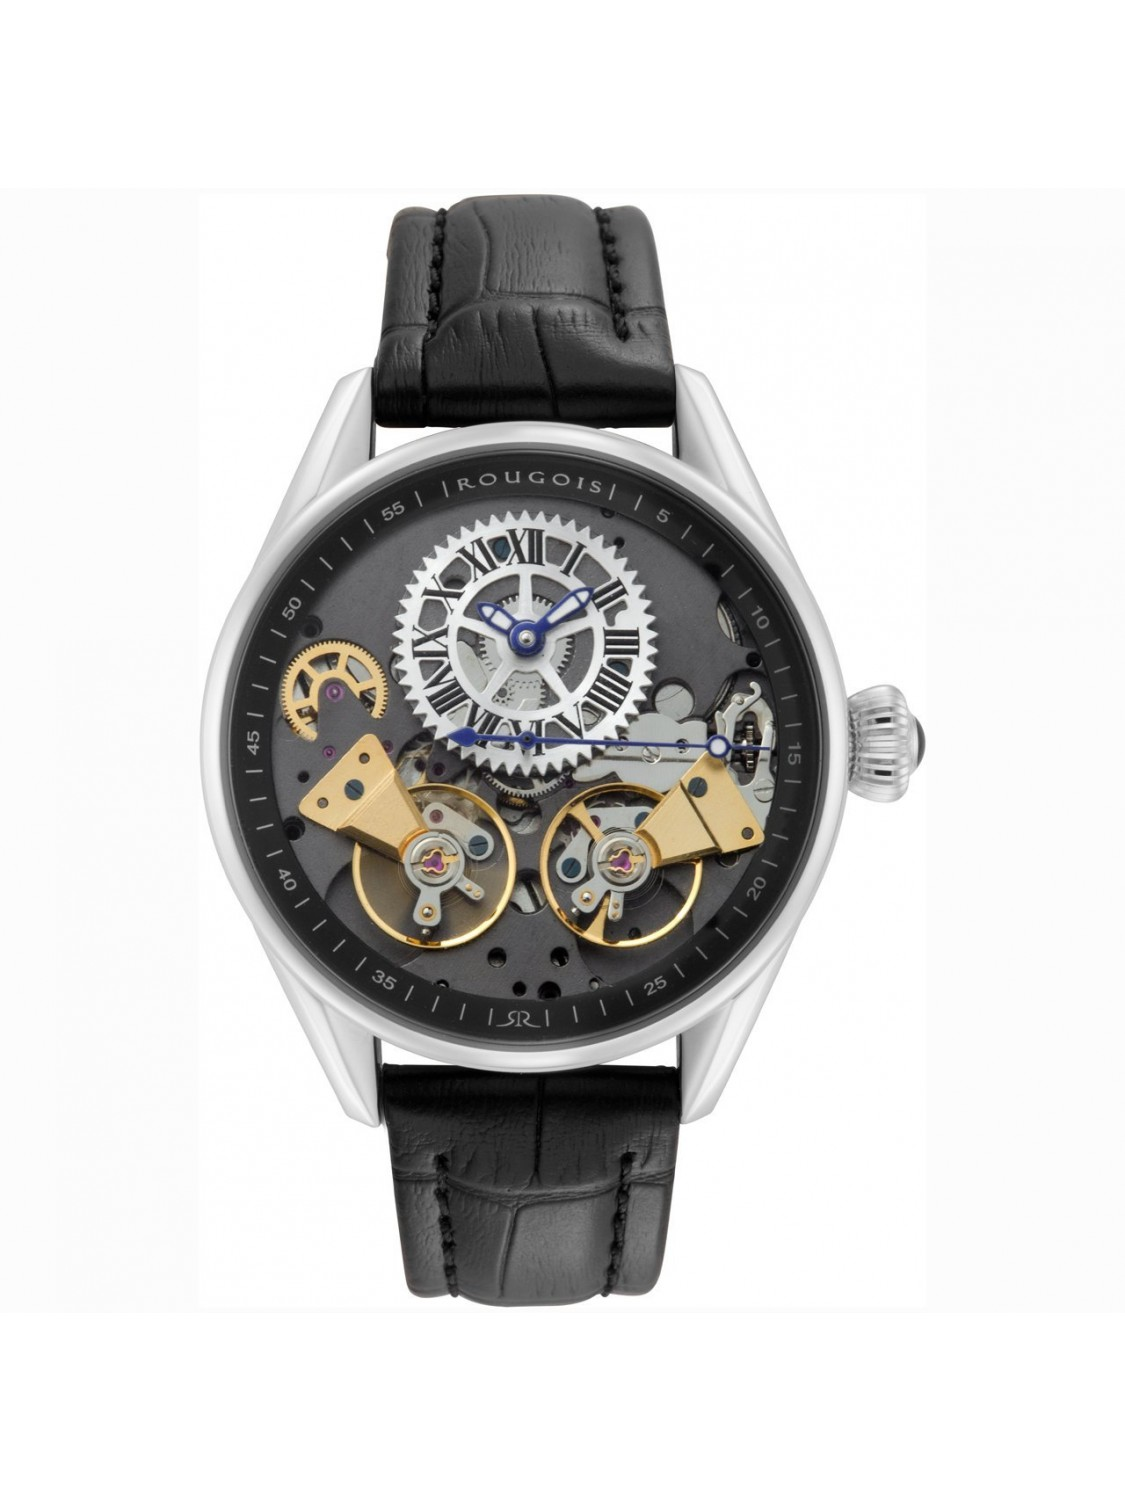 Rougois Regal Double Escapement-30